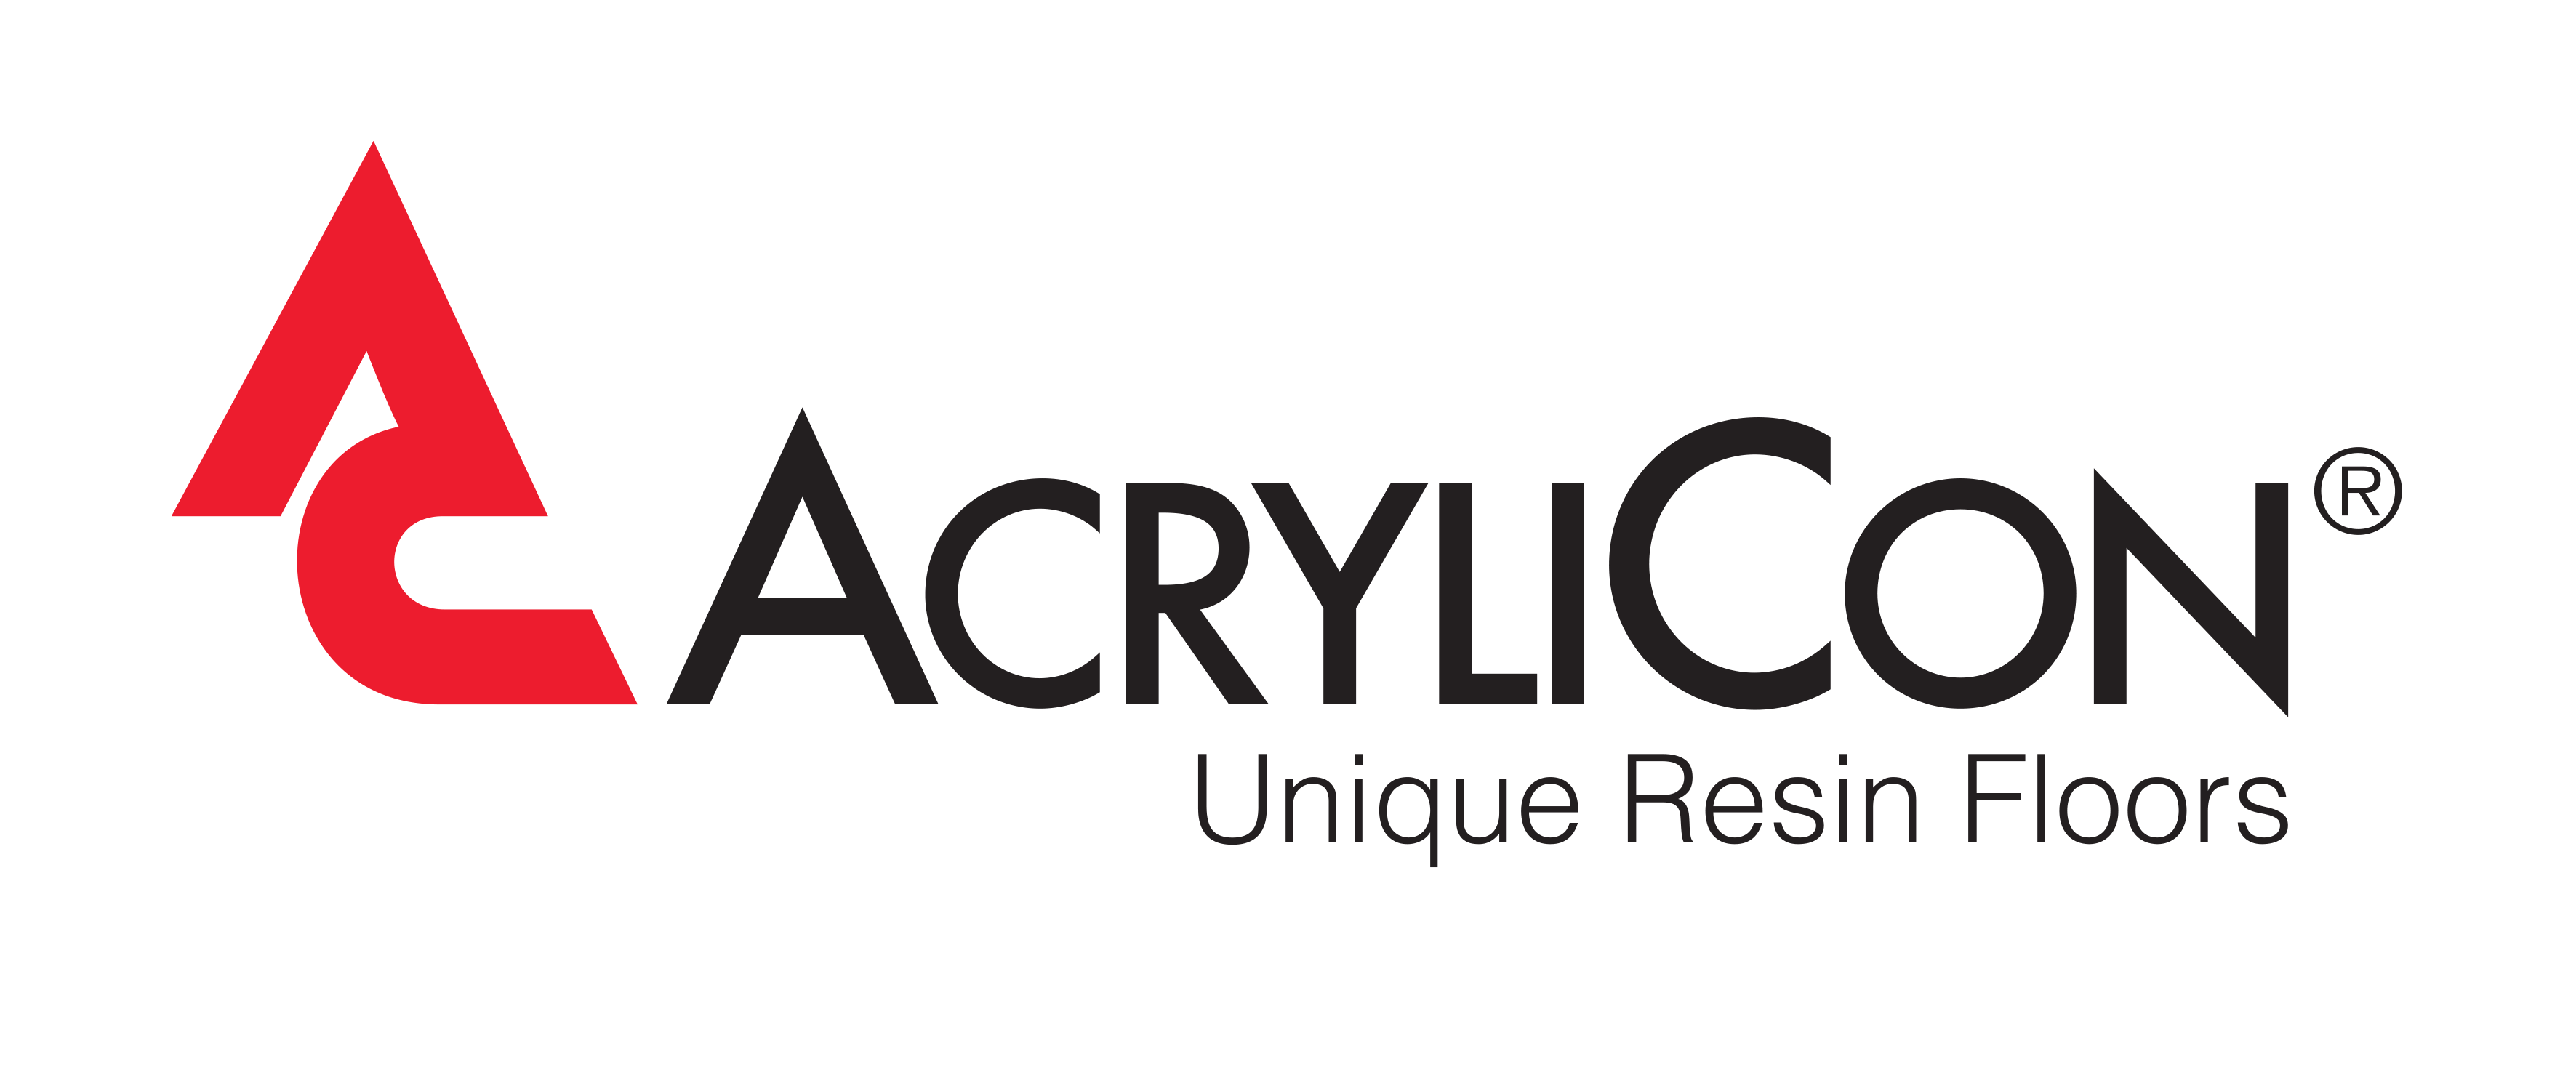 Acrylicon Brand URF High